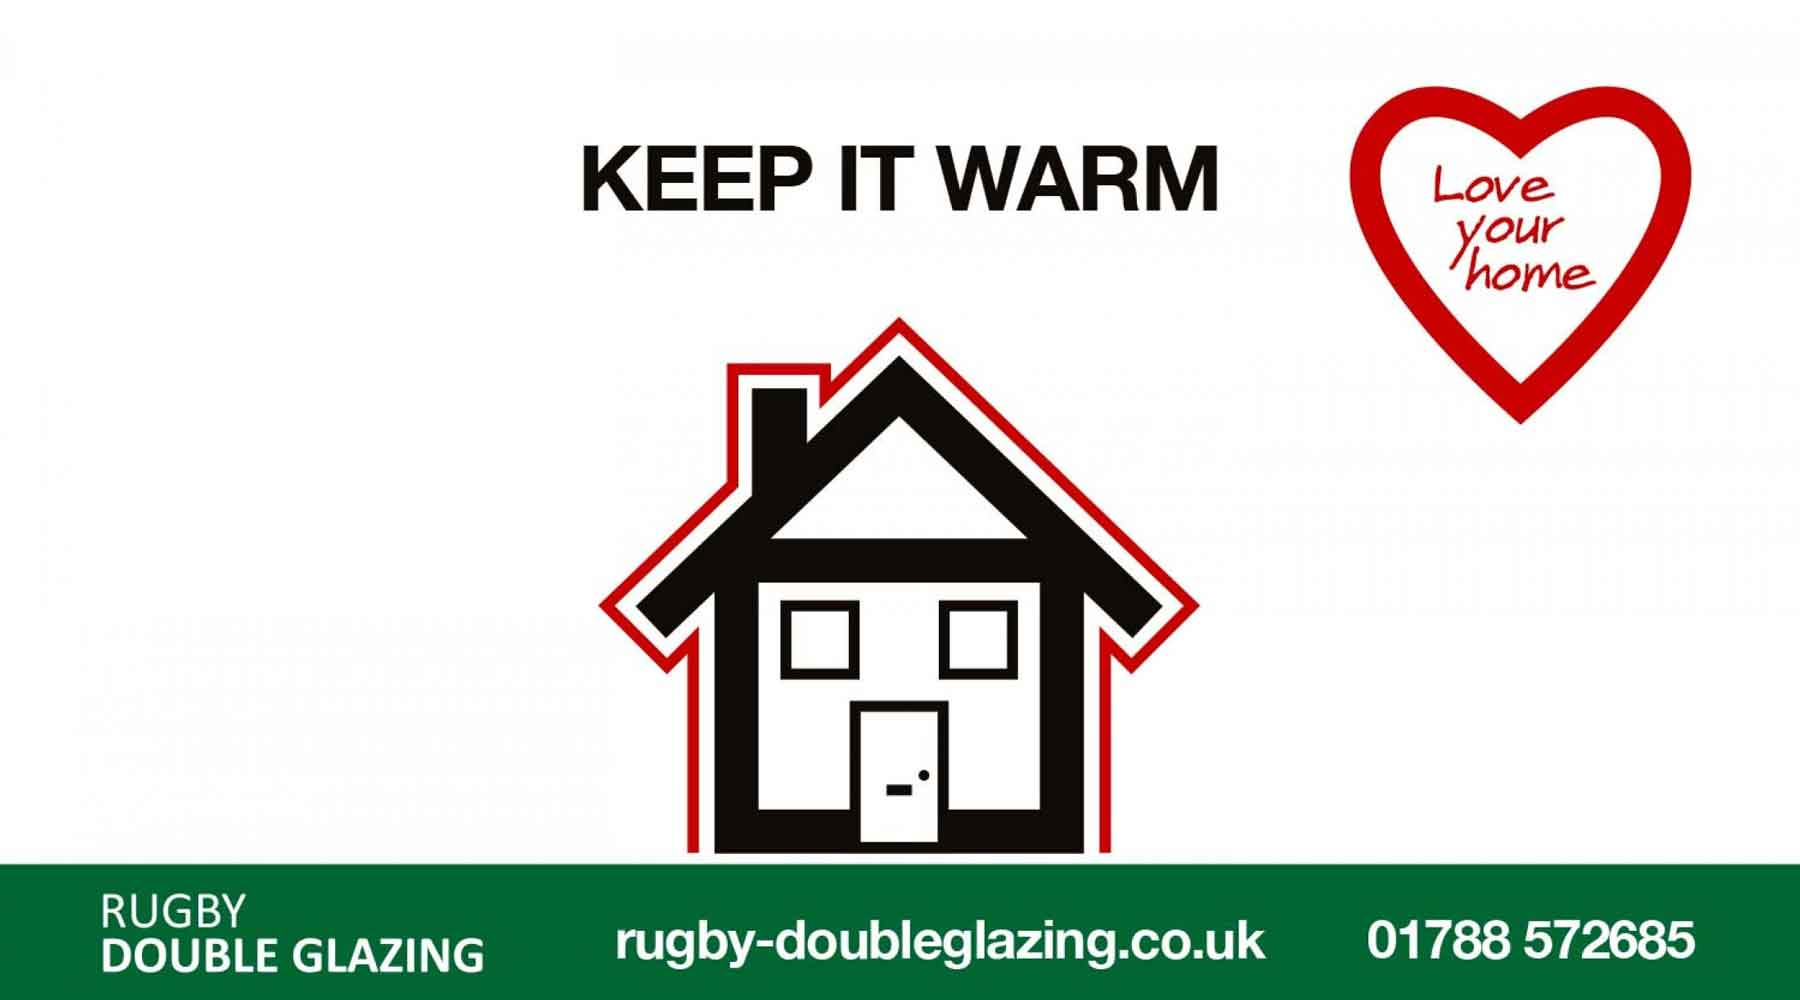 Rugby Double Glazing Animation